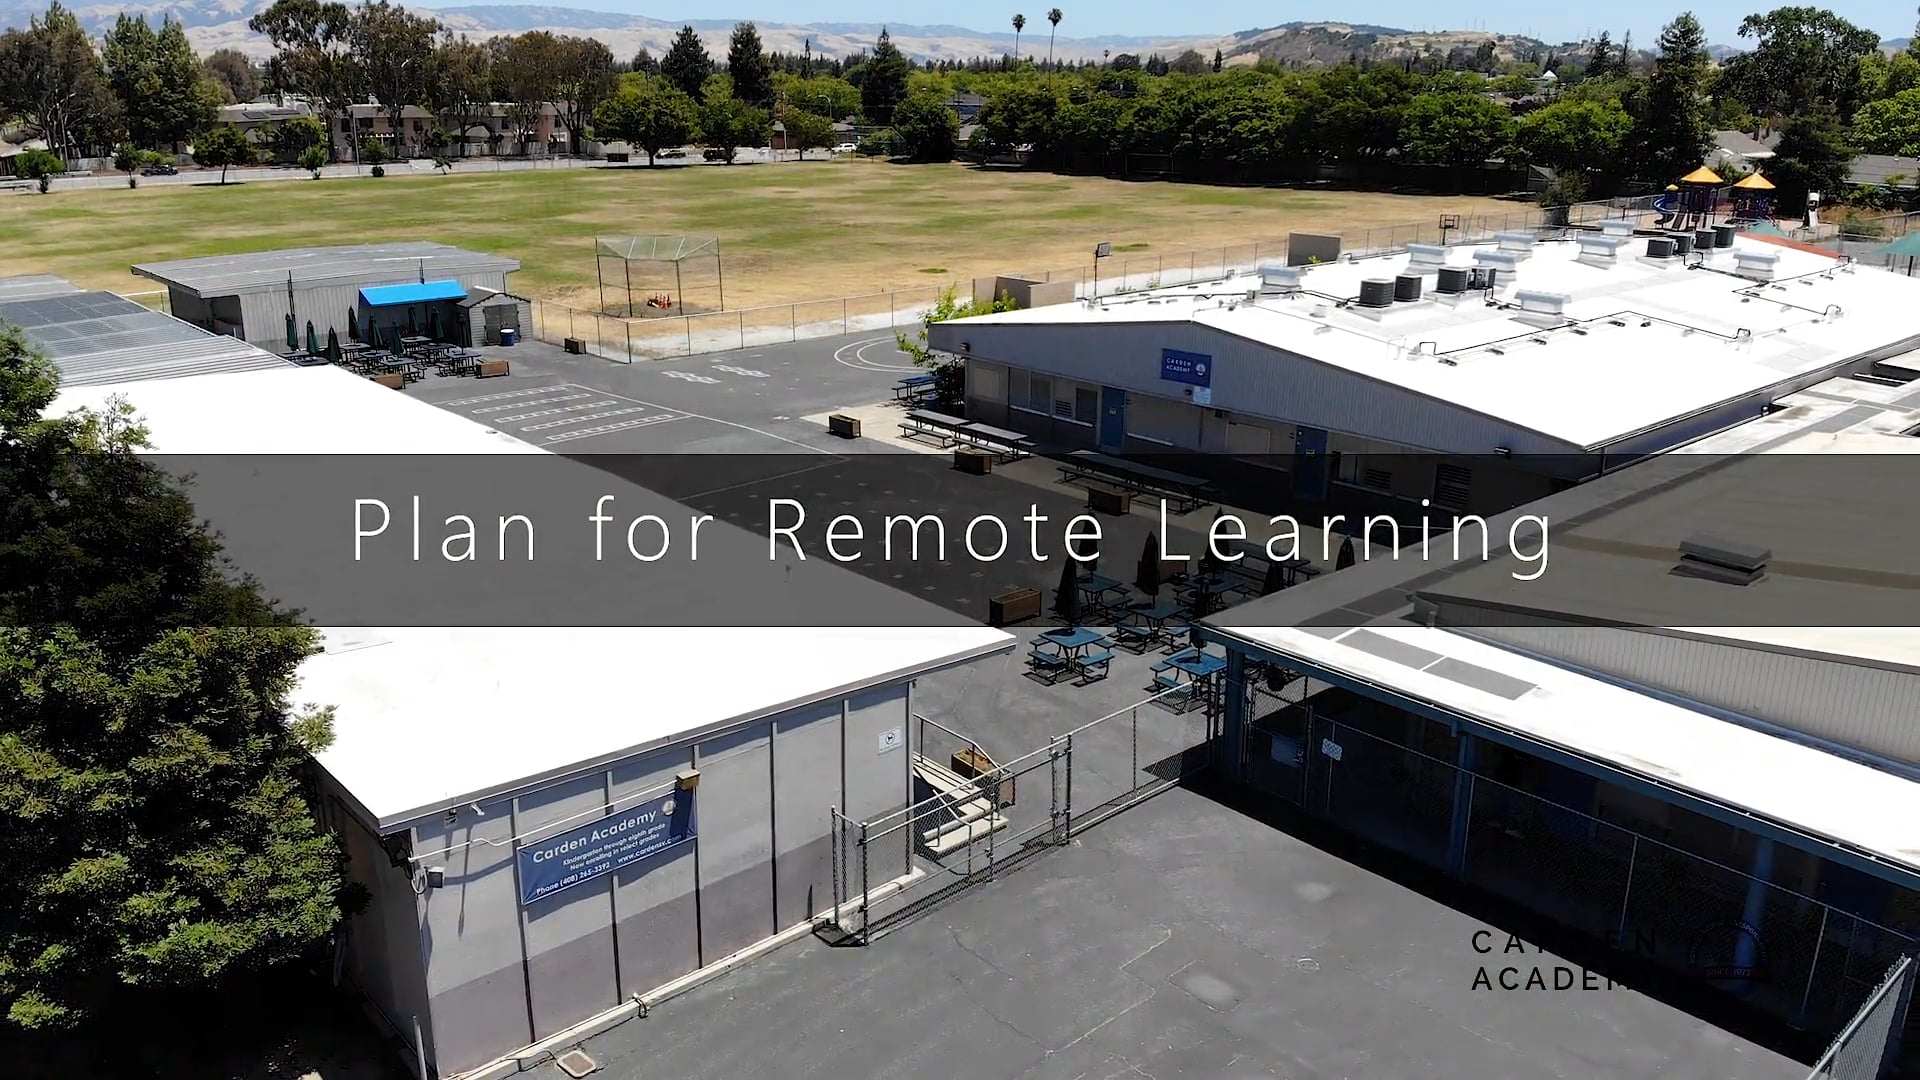 Carden Academy   Remote Learning